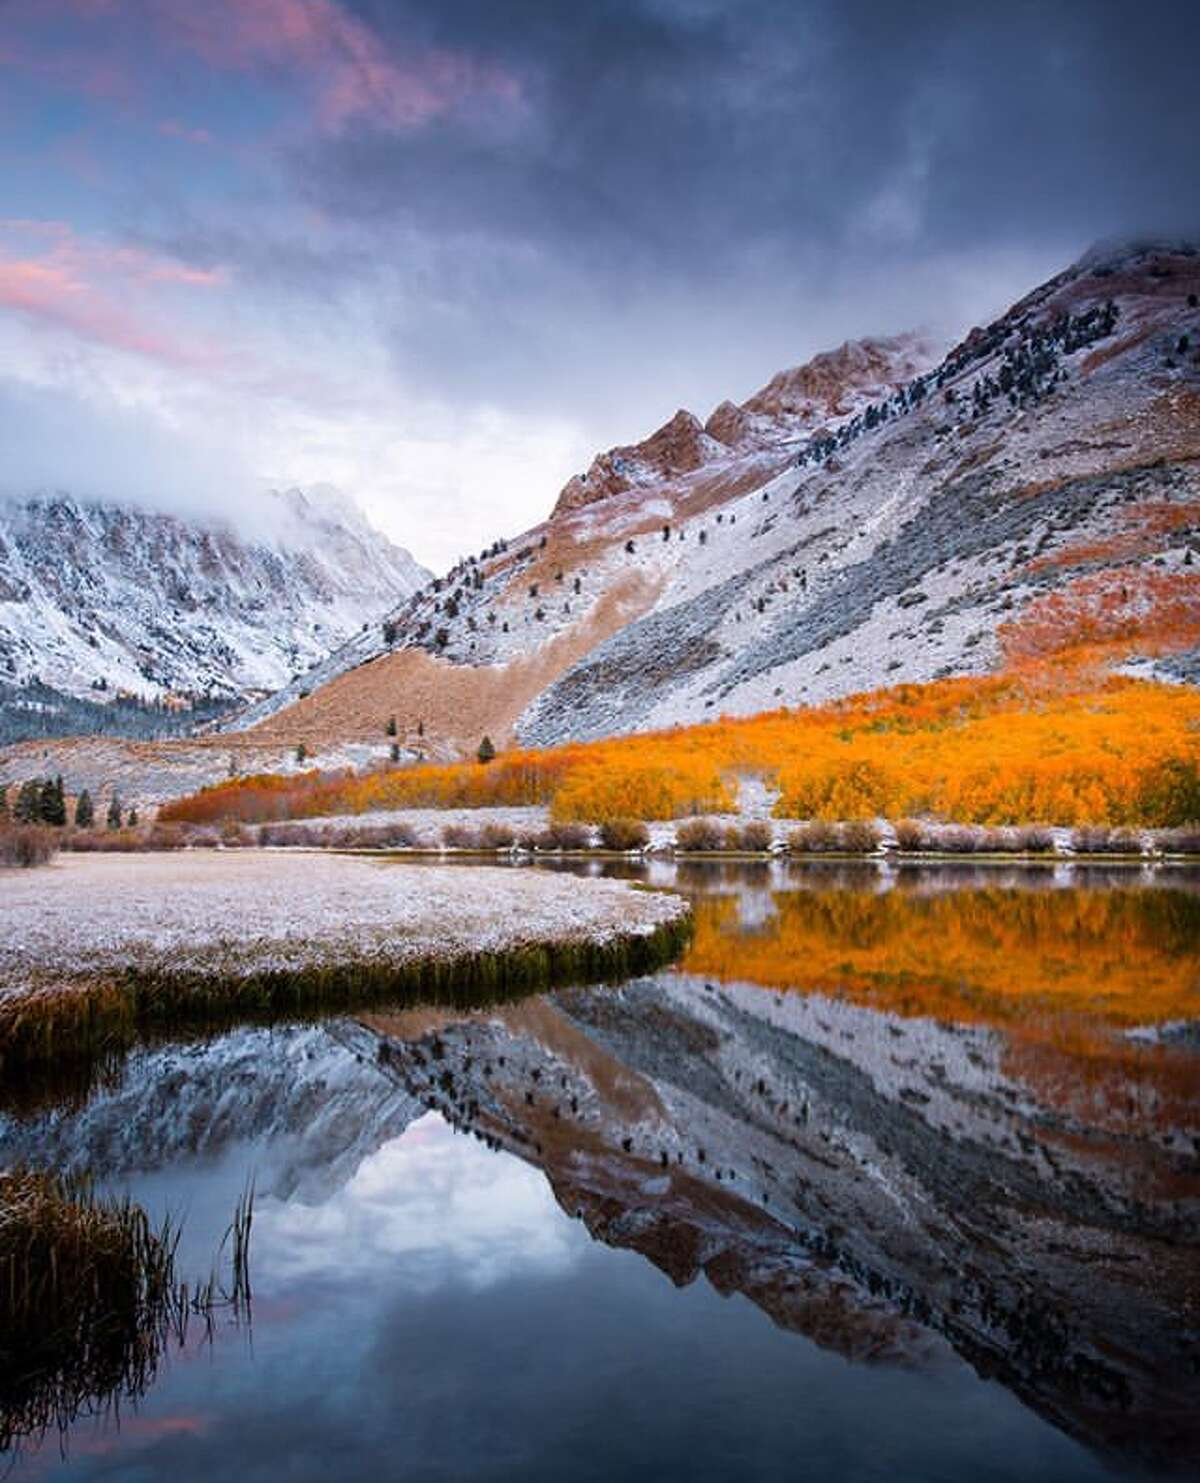 Fall and Winter meet in California by @josephsfphotography